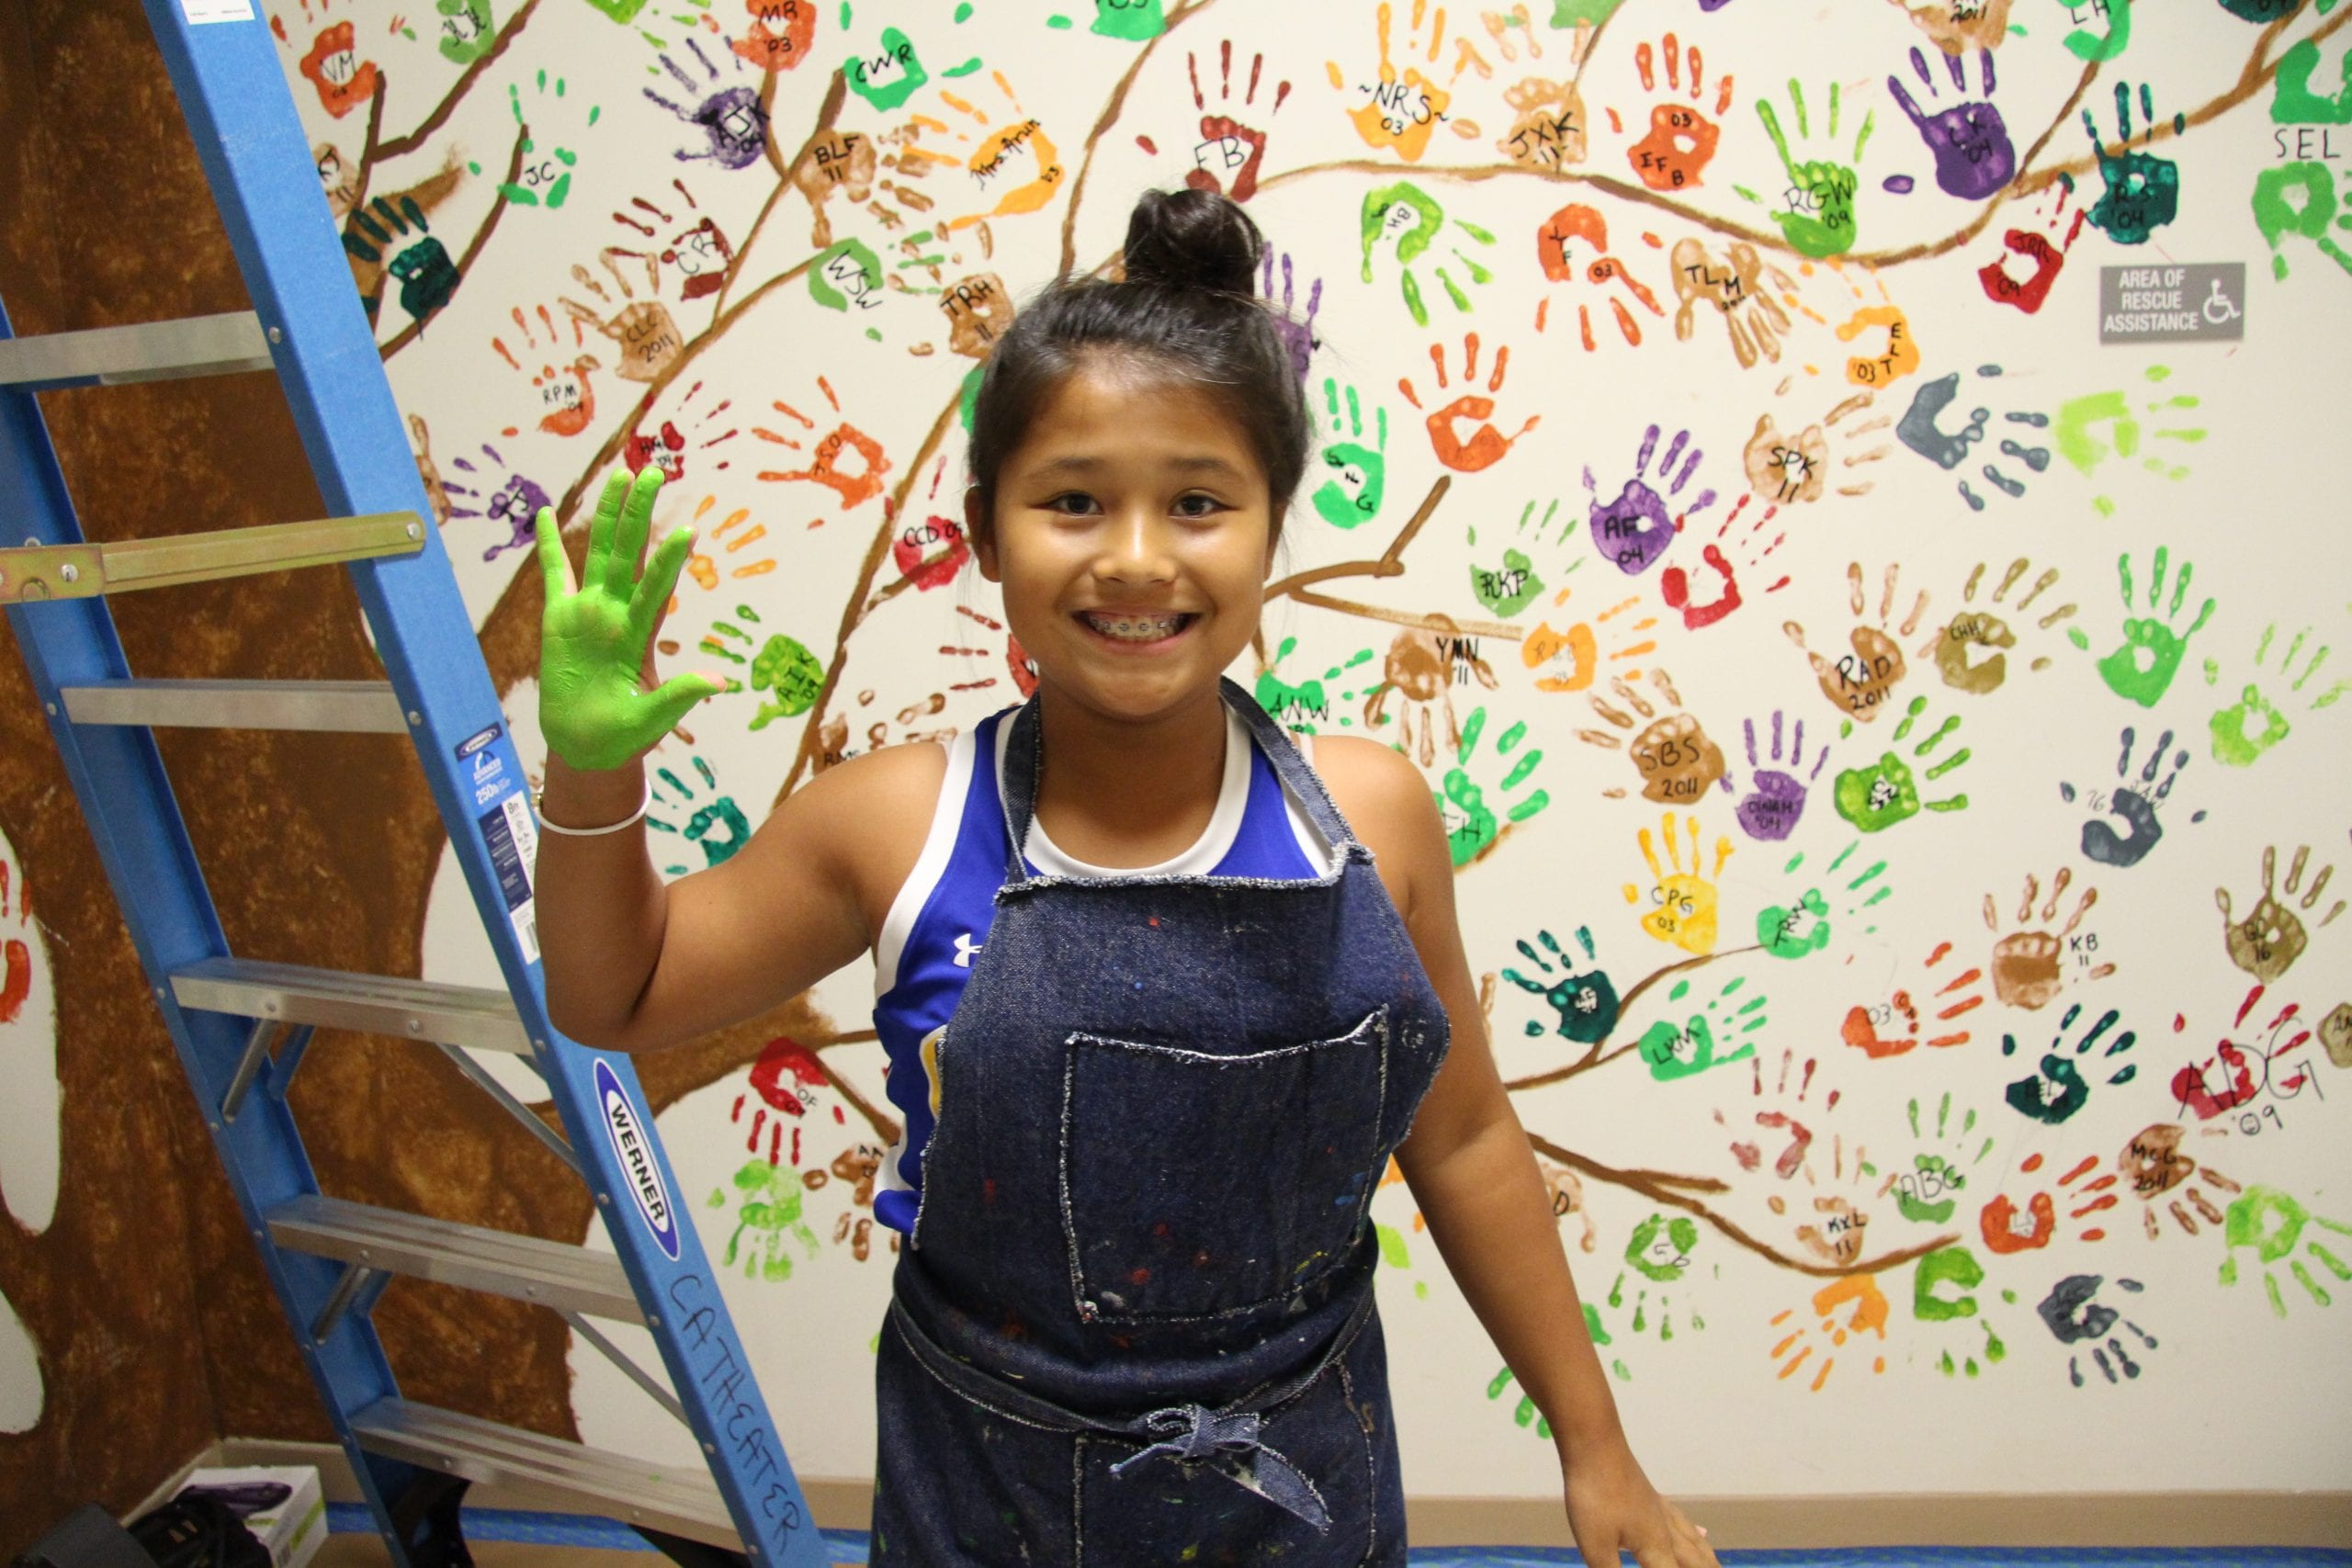 MS student in front of handprint mural